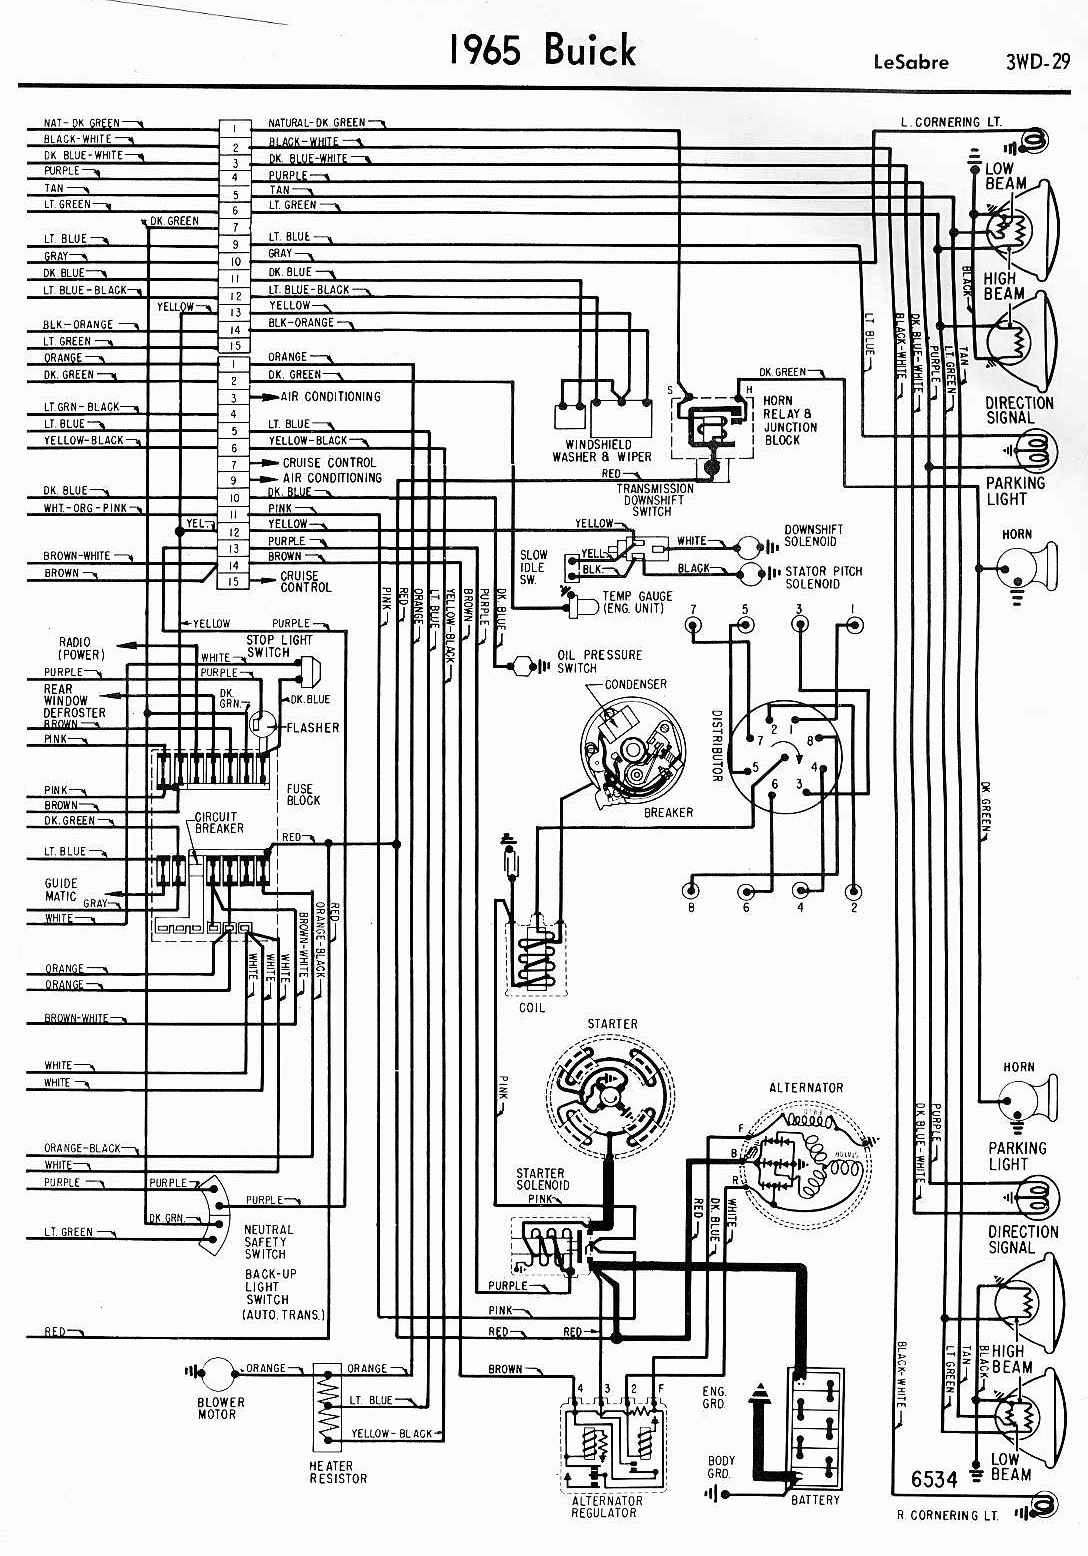 buick car manuals wiring diagrams pdf fault codes rh automotive manuals net 2004 buick lesabre fuel pump wiring diagram 2004 Buick LeSabre Limited